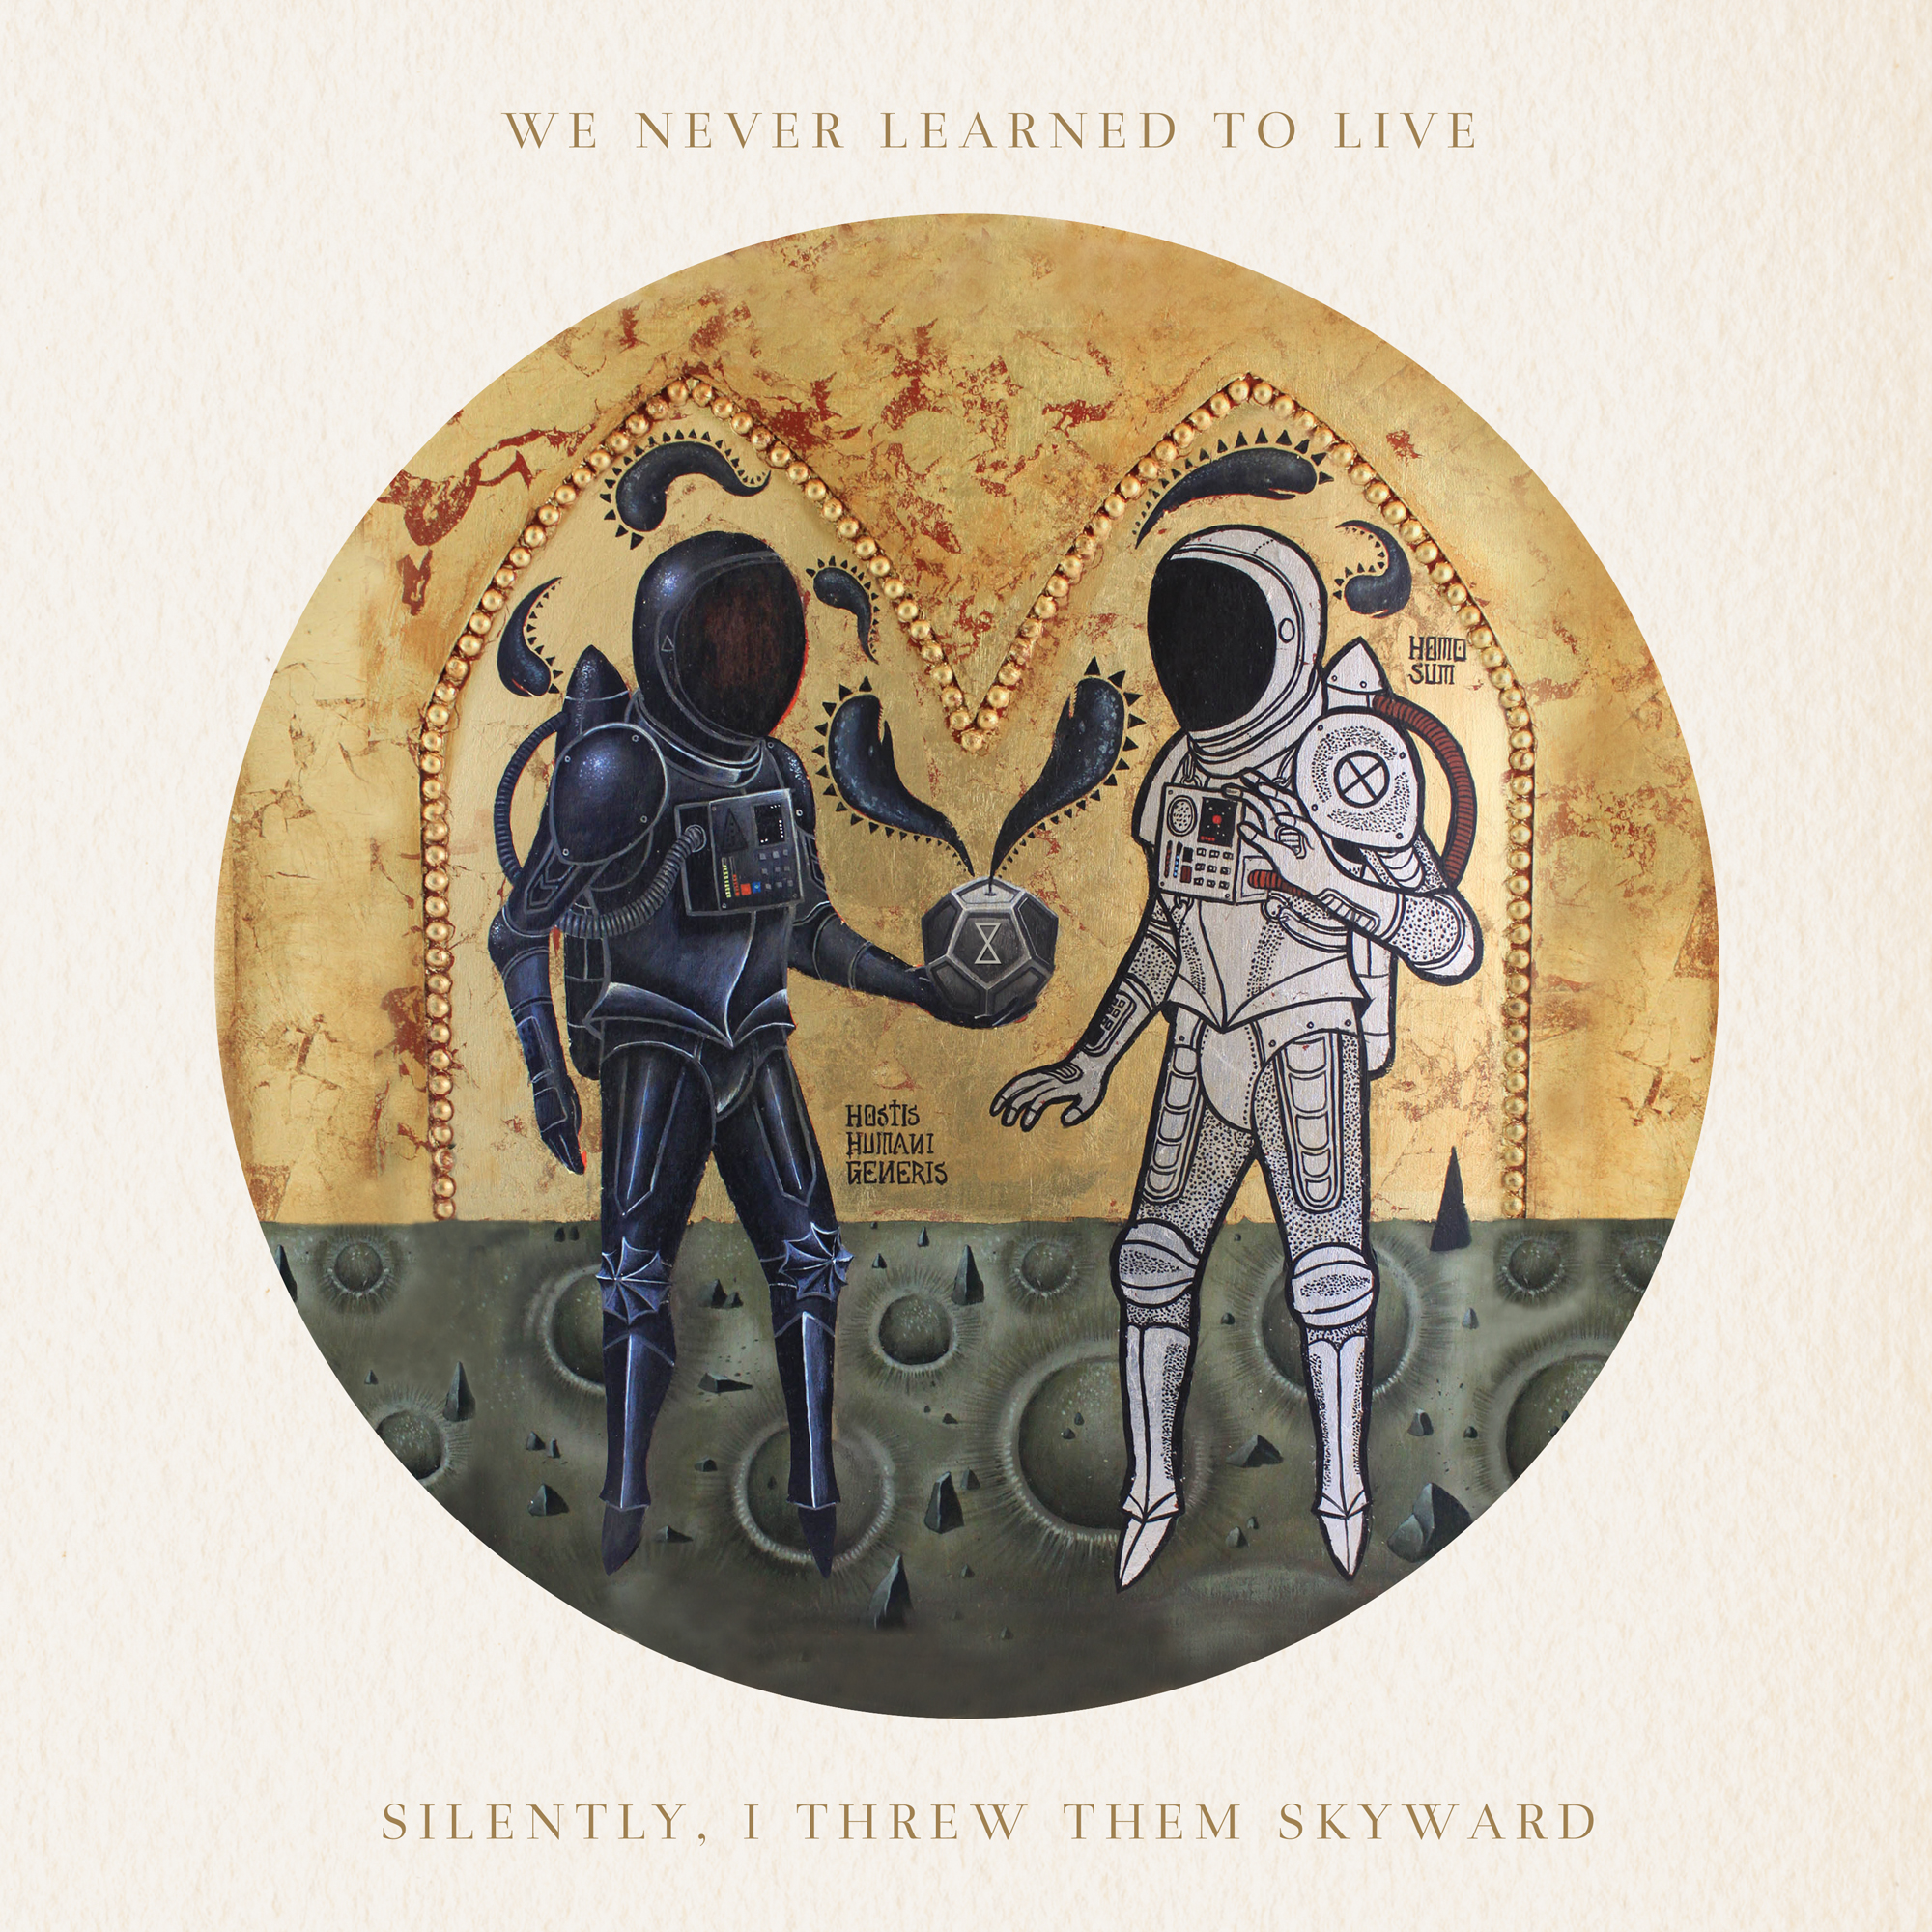 We Never Learned To Live - ' Silently, I Threw Them Skyward'